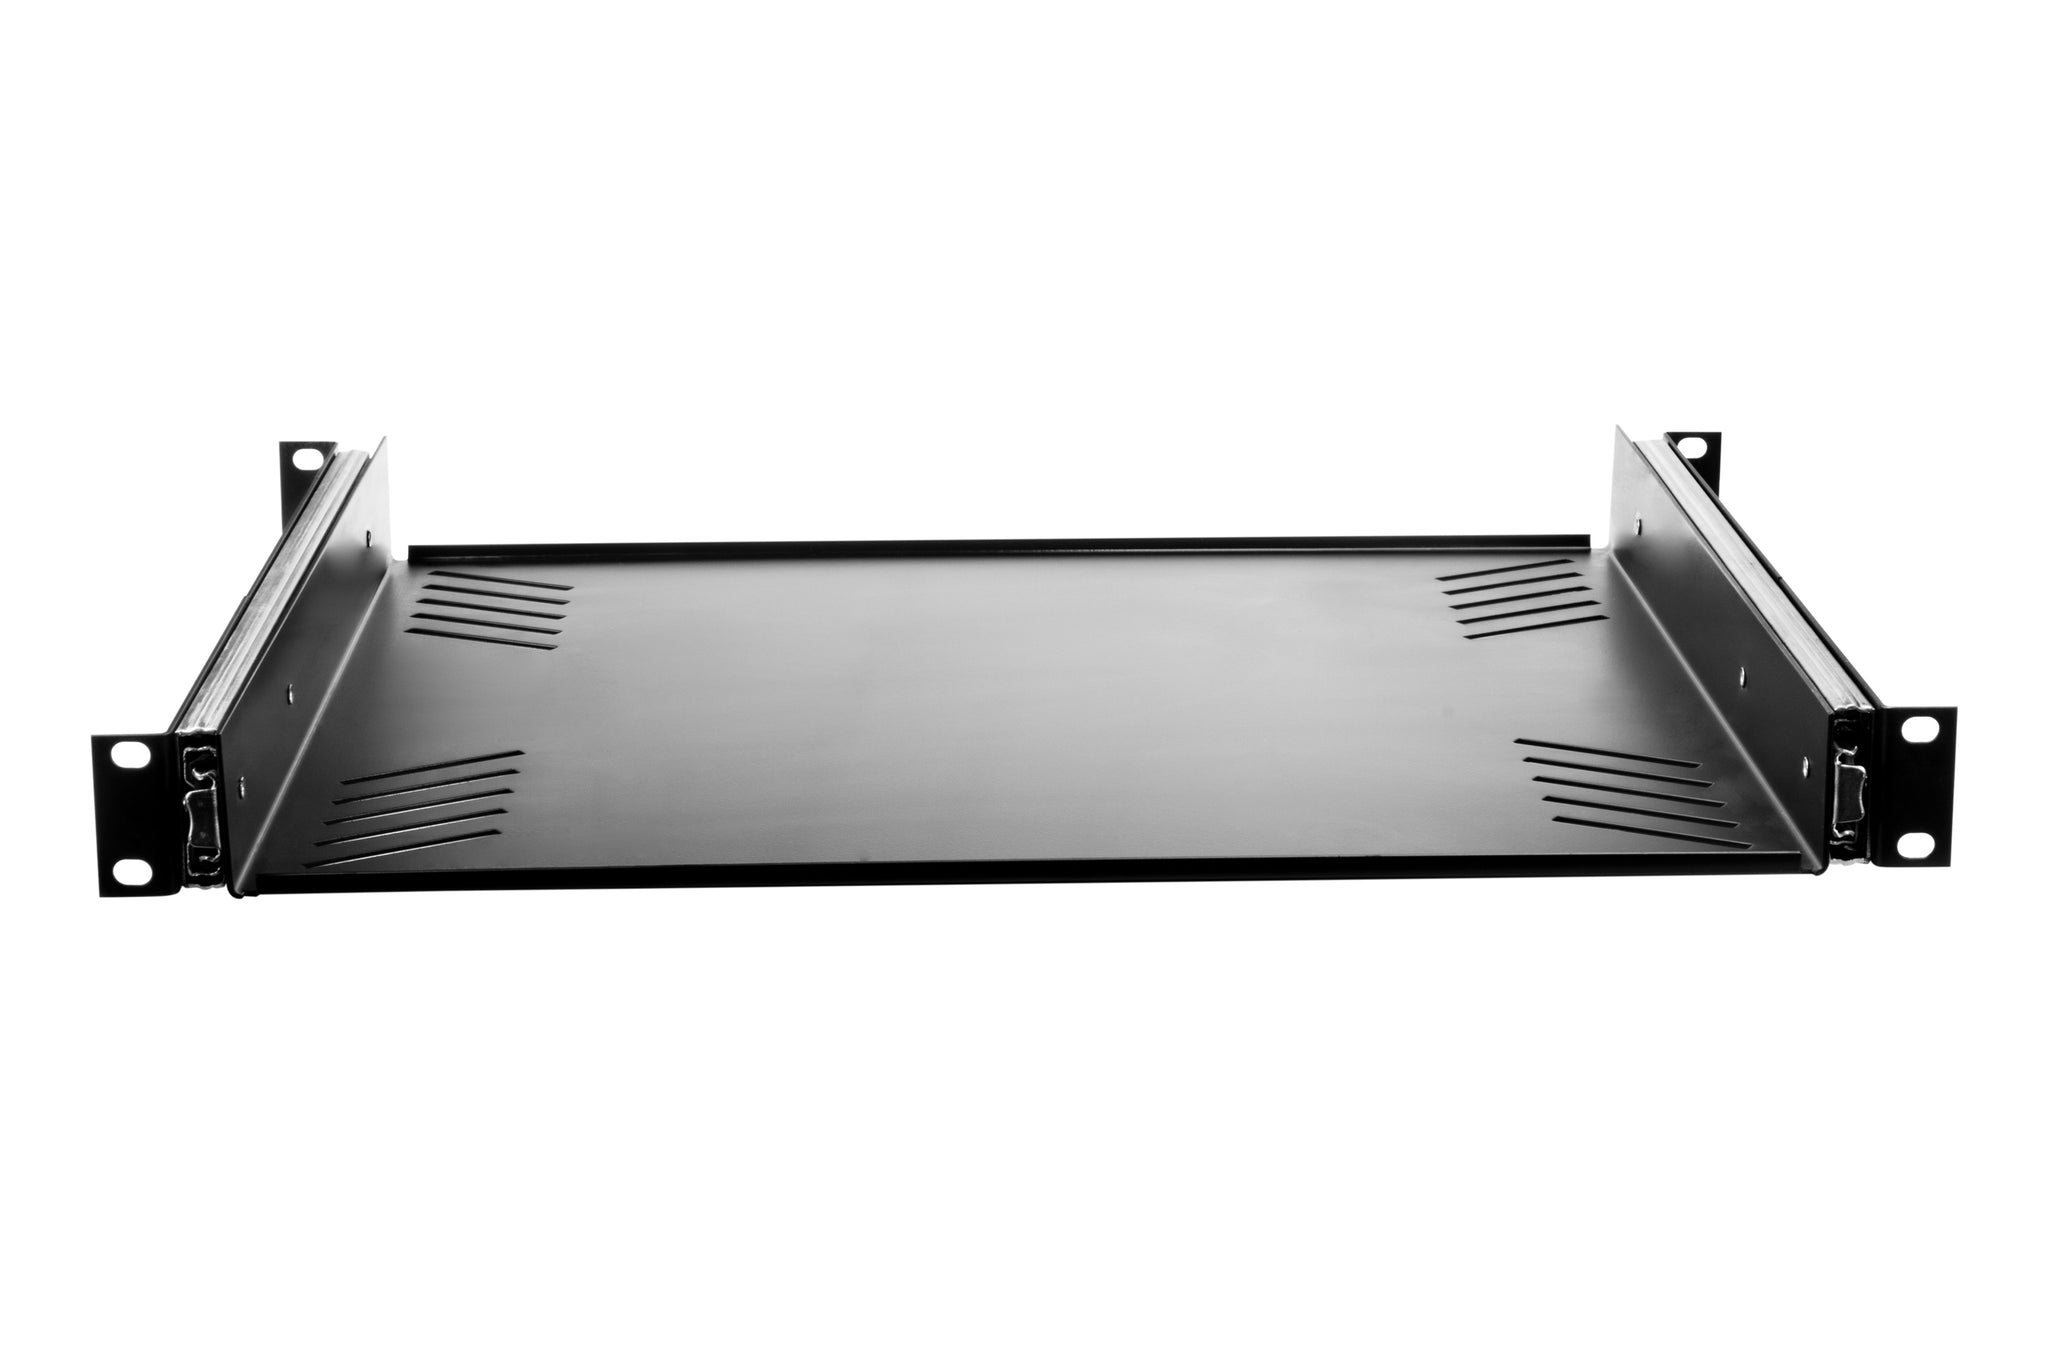 OSP RS1U-SLIDER Universal Flat 1 Space Sliding Shelf